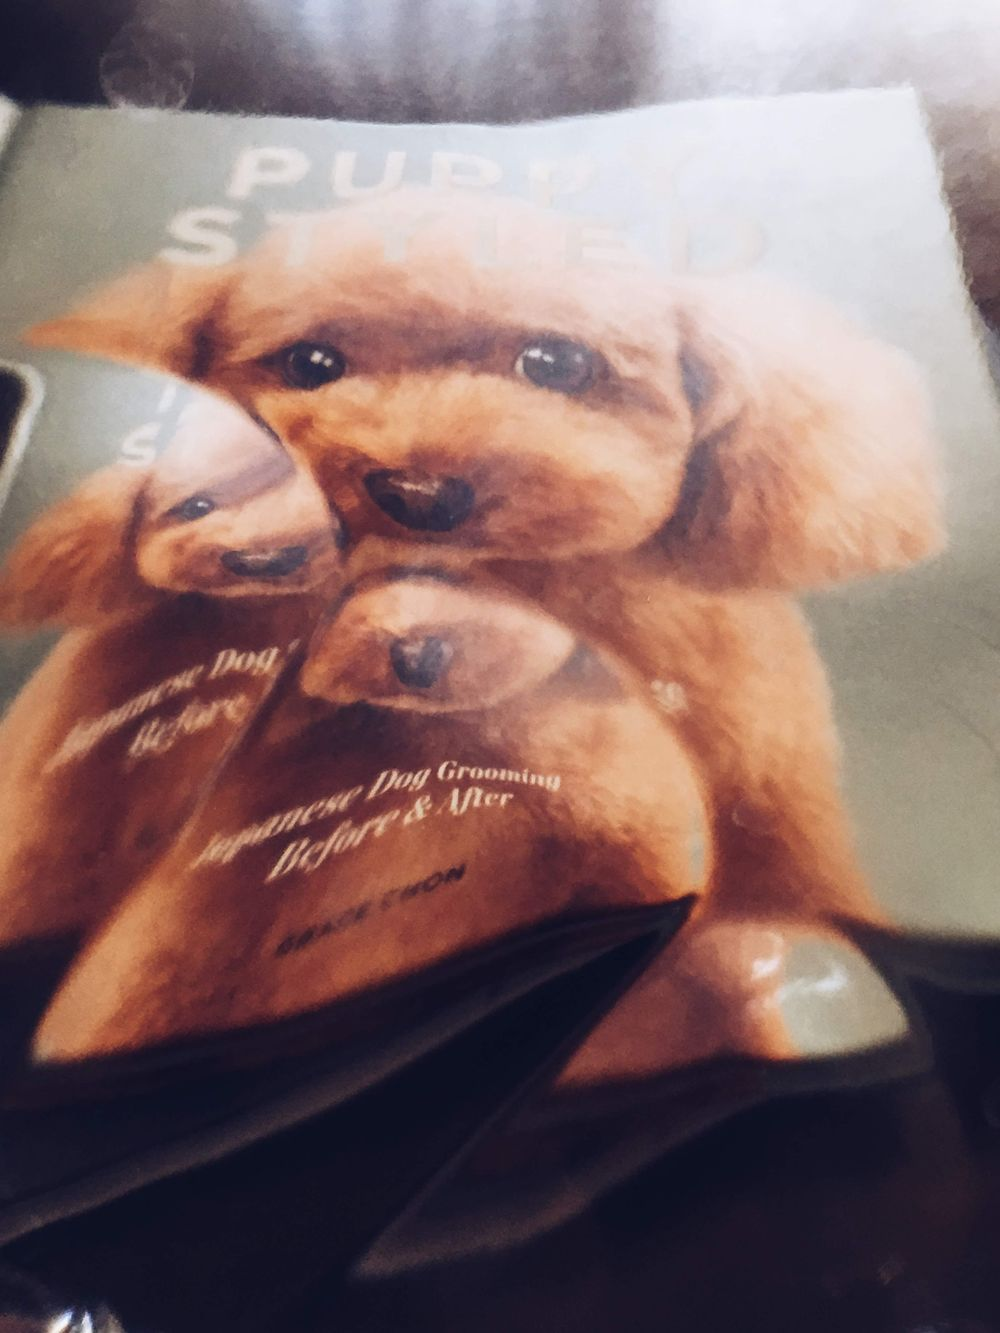 Puppy Styled shot through a drinking glass! - image 3 - student project